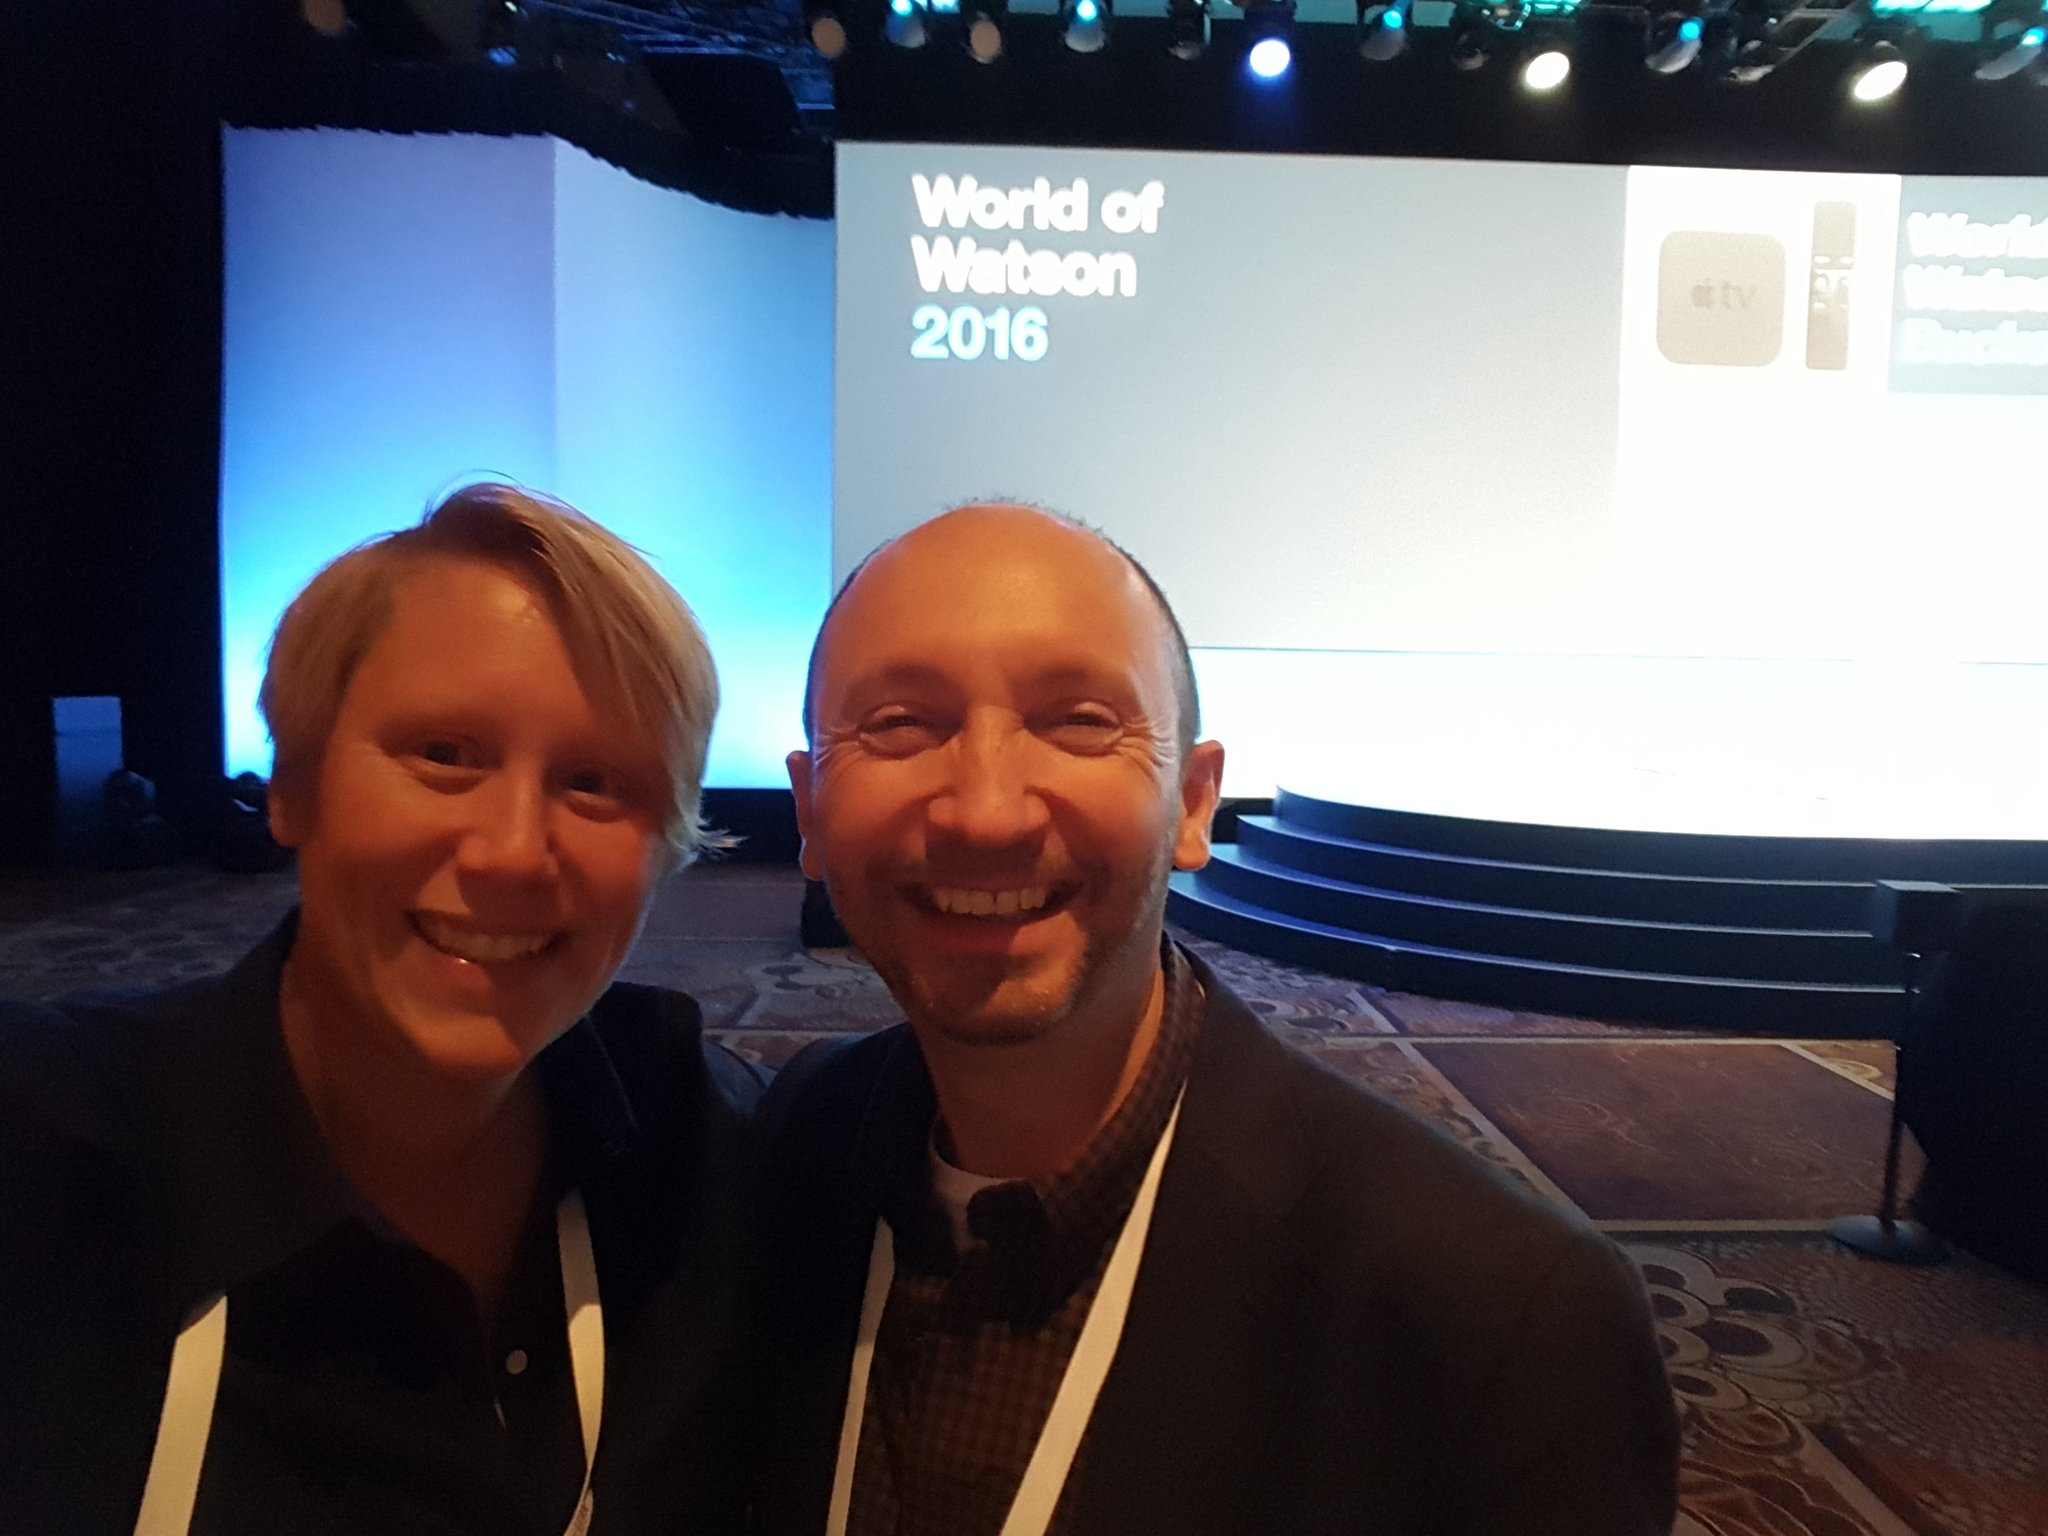 .@pragmatik and I getting our seats early for the first of a @harrietgreen1 double bill at #ibmwow #IoT #education https://t.co/4sJ865Ioru